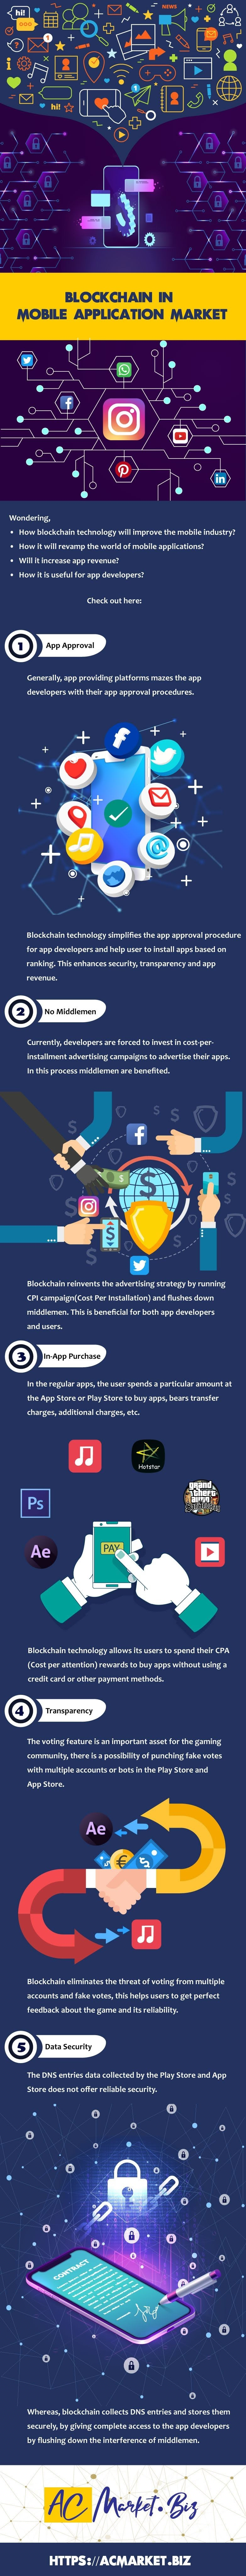 Mobile App development / Blockchain In Mobile Application Market #infographic